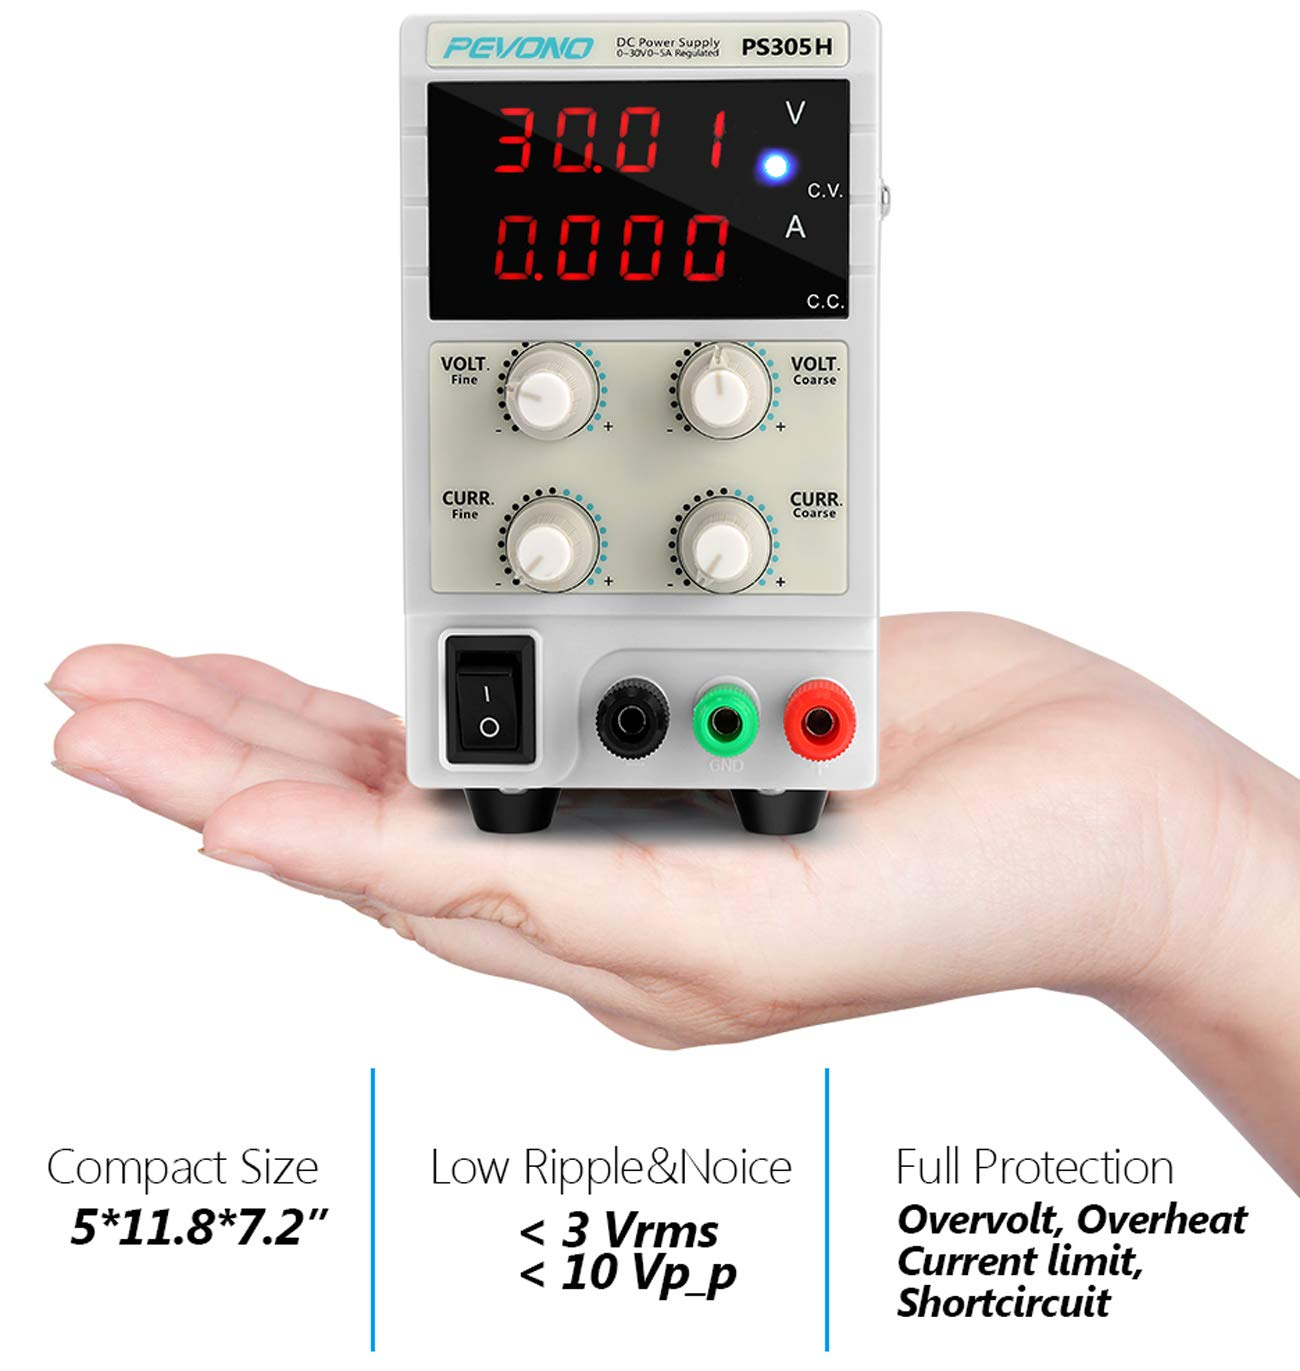 Best DC Bench Power Supply, Pevono PS305H 30V/5A 4 Digital LED Desktop Switching Variable Power Supply Voltage&Current Regulated Supply Power Source For Lab Repair,Electronic Tester, Power Calculator by Pevono (Image #7)